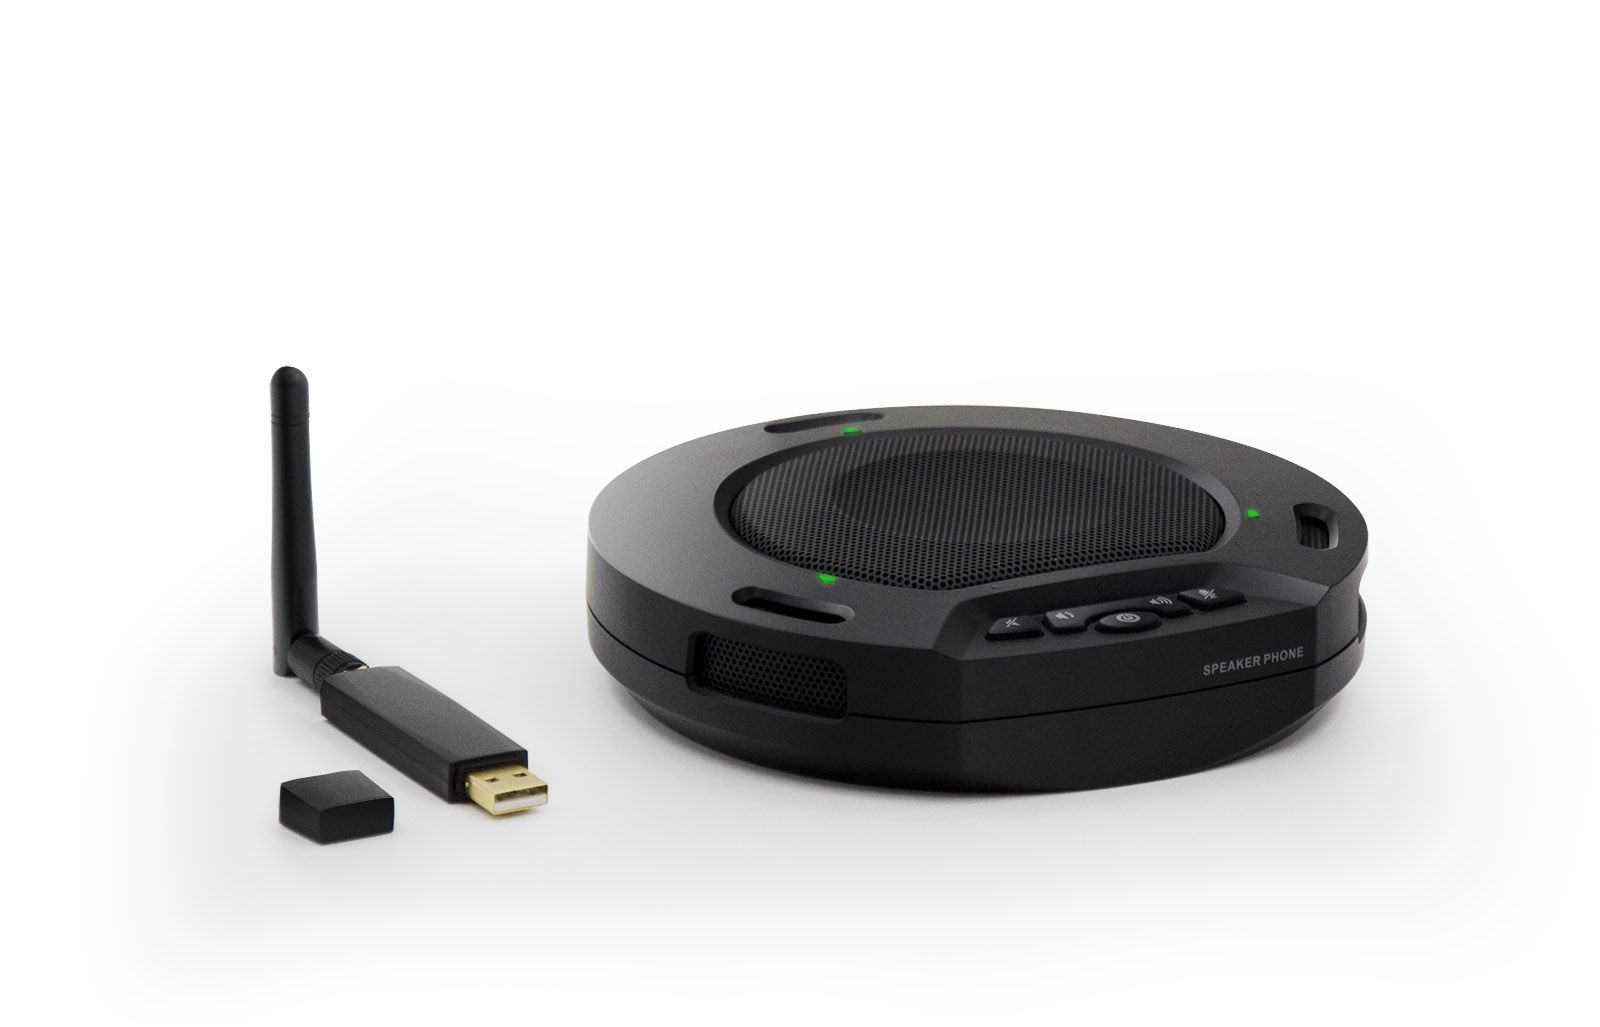 Eztalks M310 The Affordable Speakerphone For Your Remote Meetings